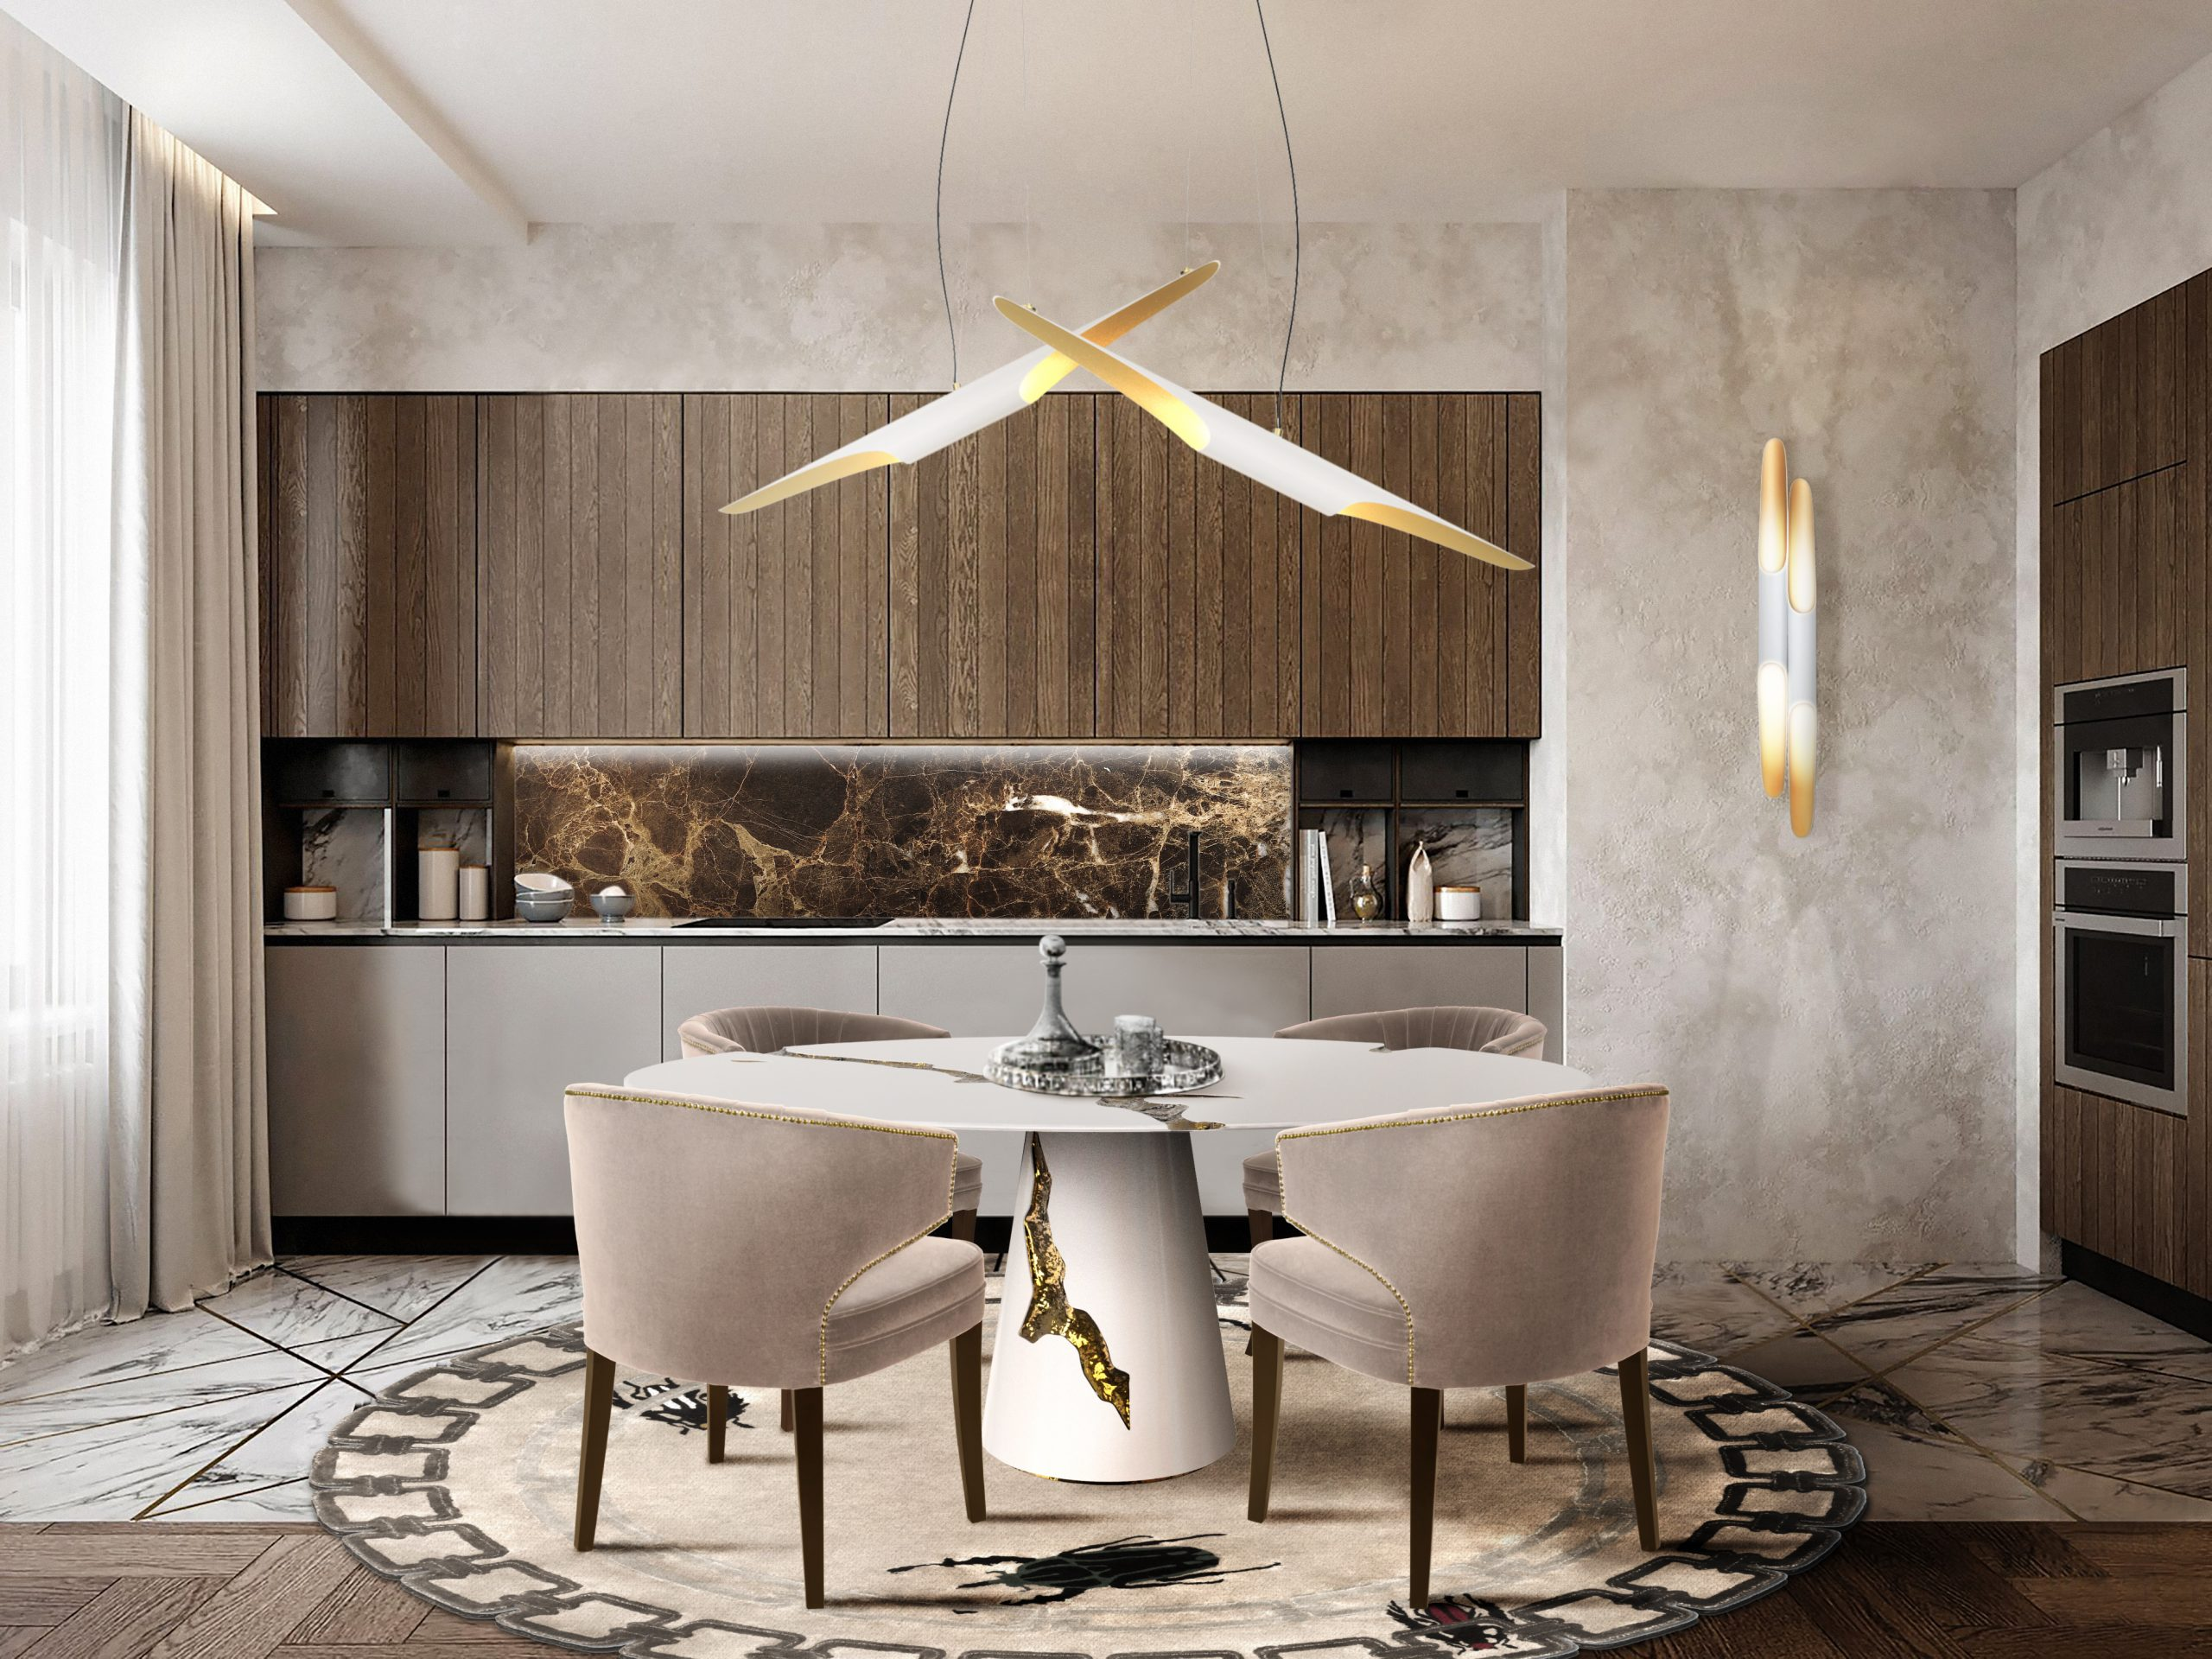 7 Dining Rooms That Make The Most Out of Limited Space Due to the Lighting Fixture! dining rooms 7 Dining Rooms That Make The Most Out of Limited Space Due to the Lighting Fixture! 4 4 scaled